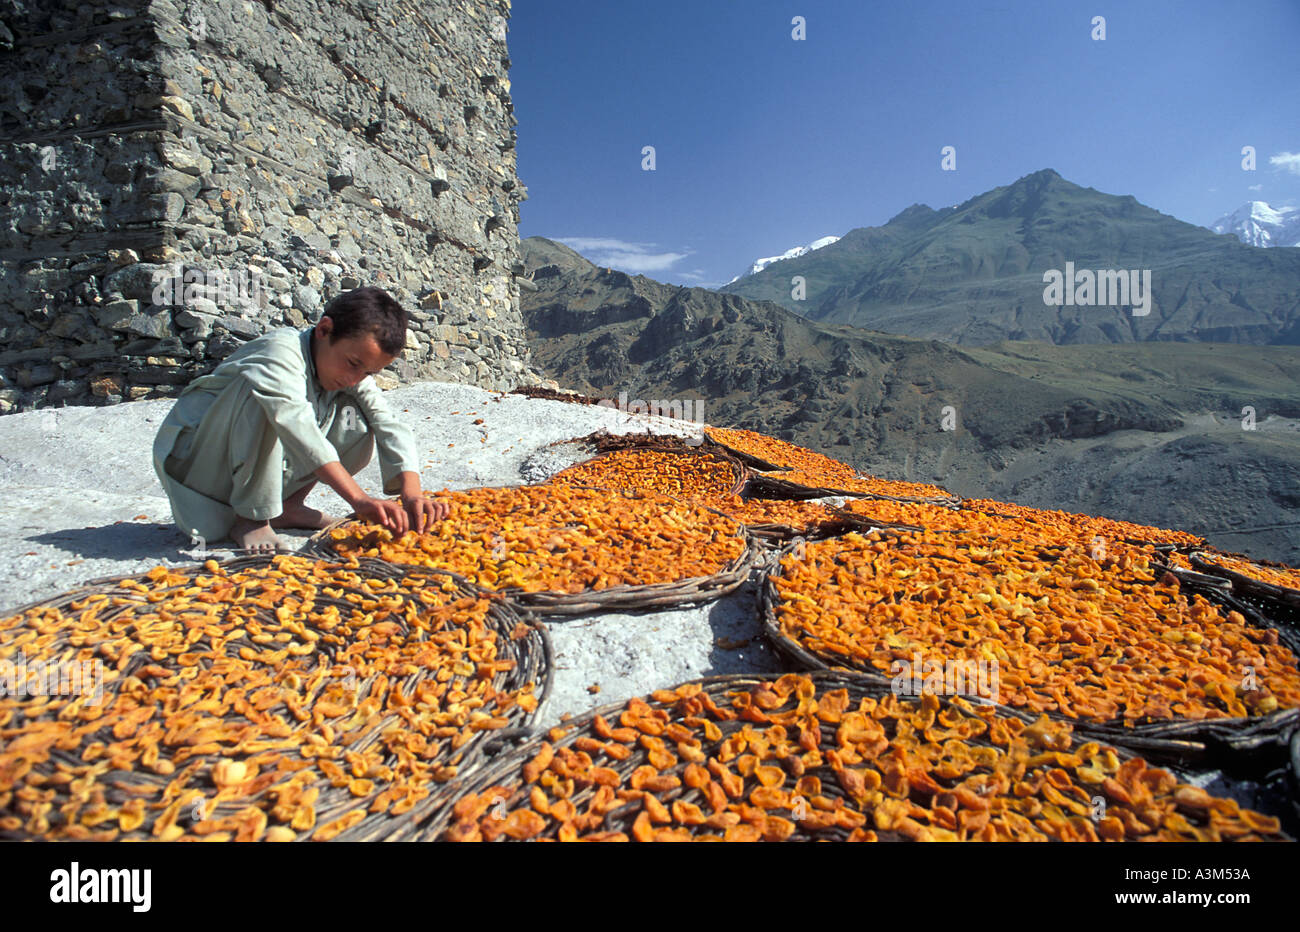 Sunbaked Apricots Apricots laid out in flat baskets to dry in the baking Himalayan sun - Stock Image